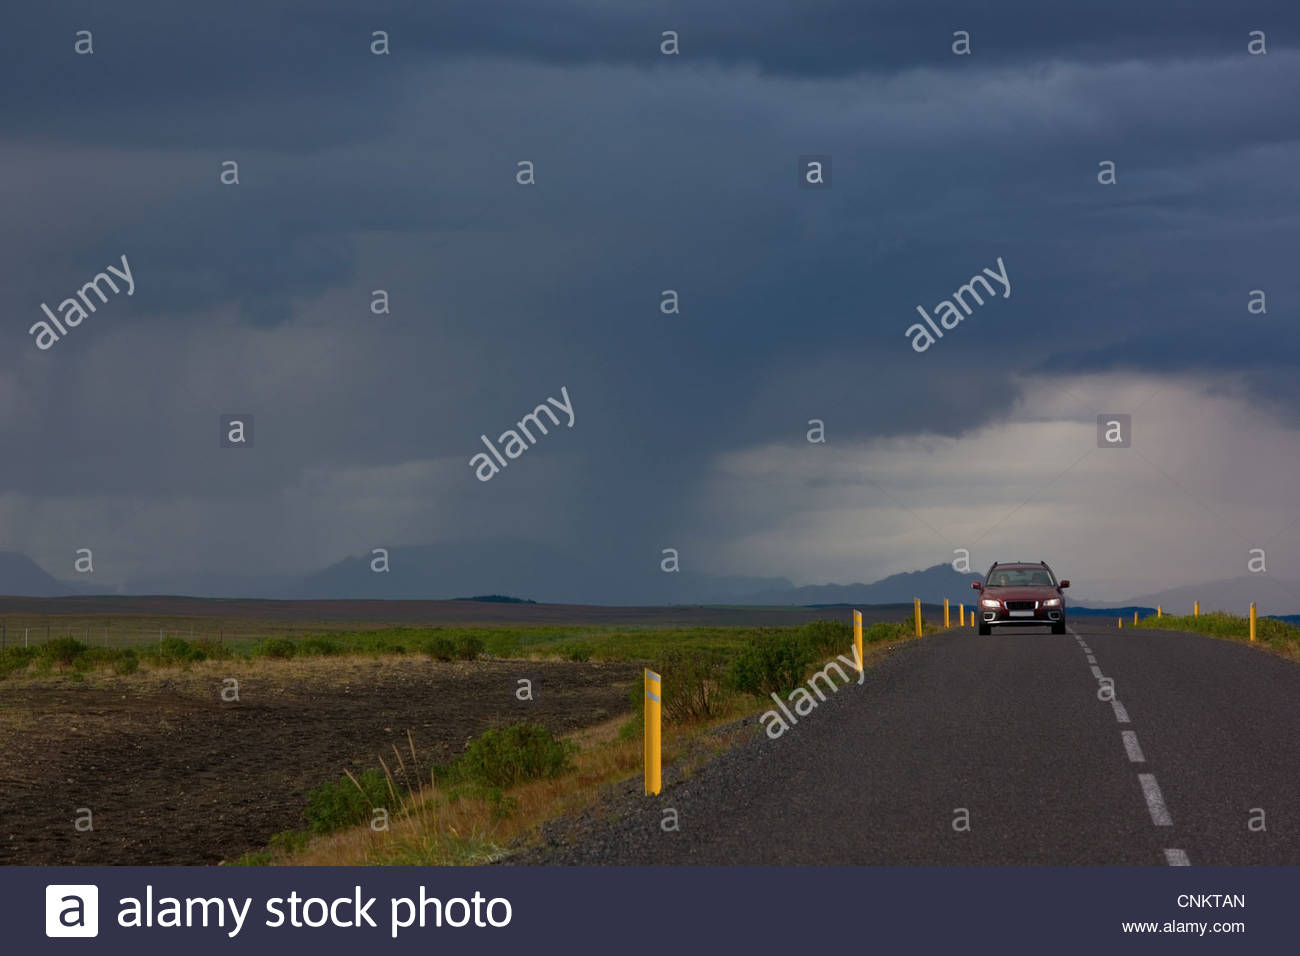 Car on rural road under dramatic sky - Stock Image